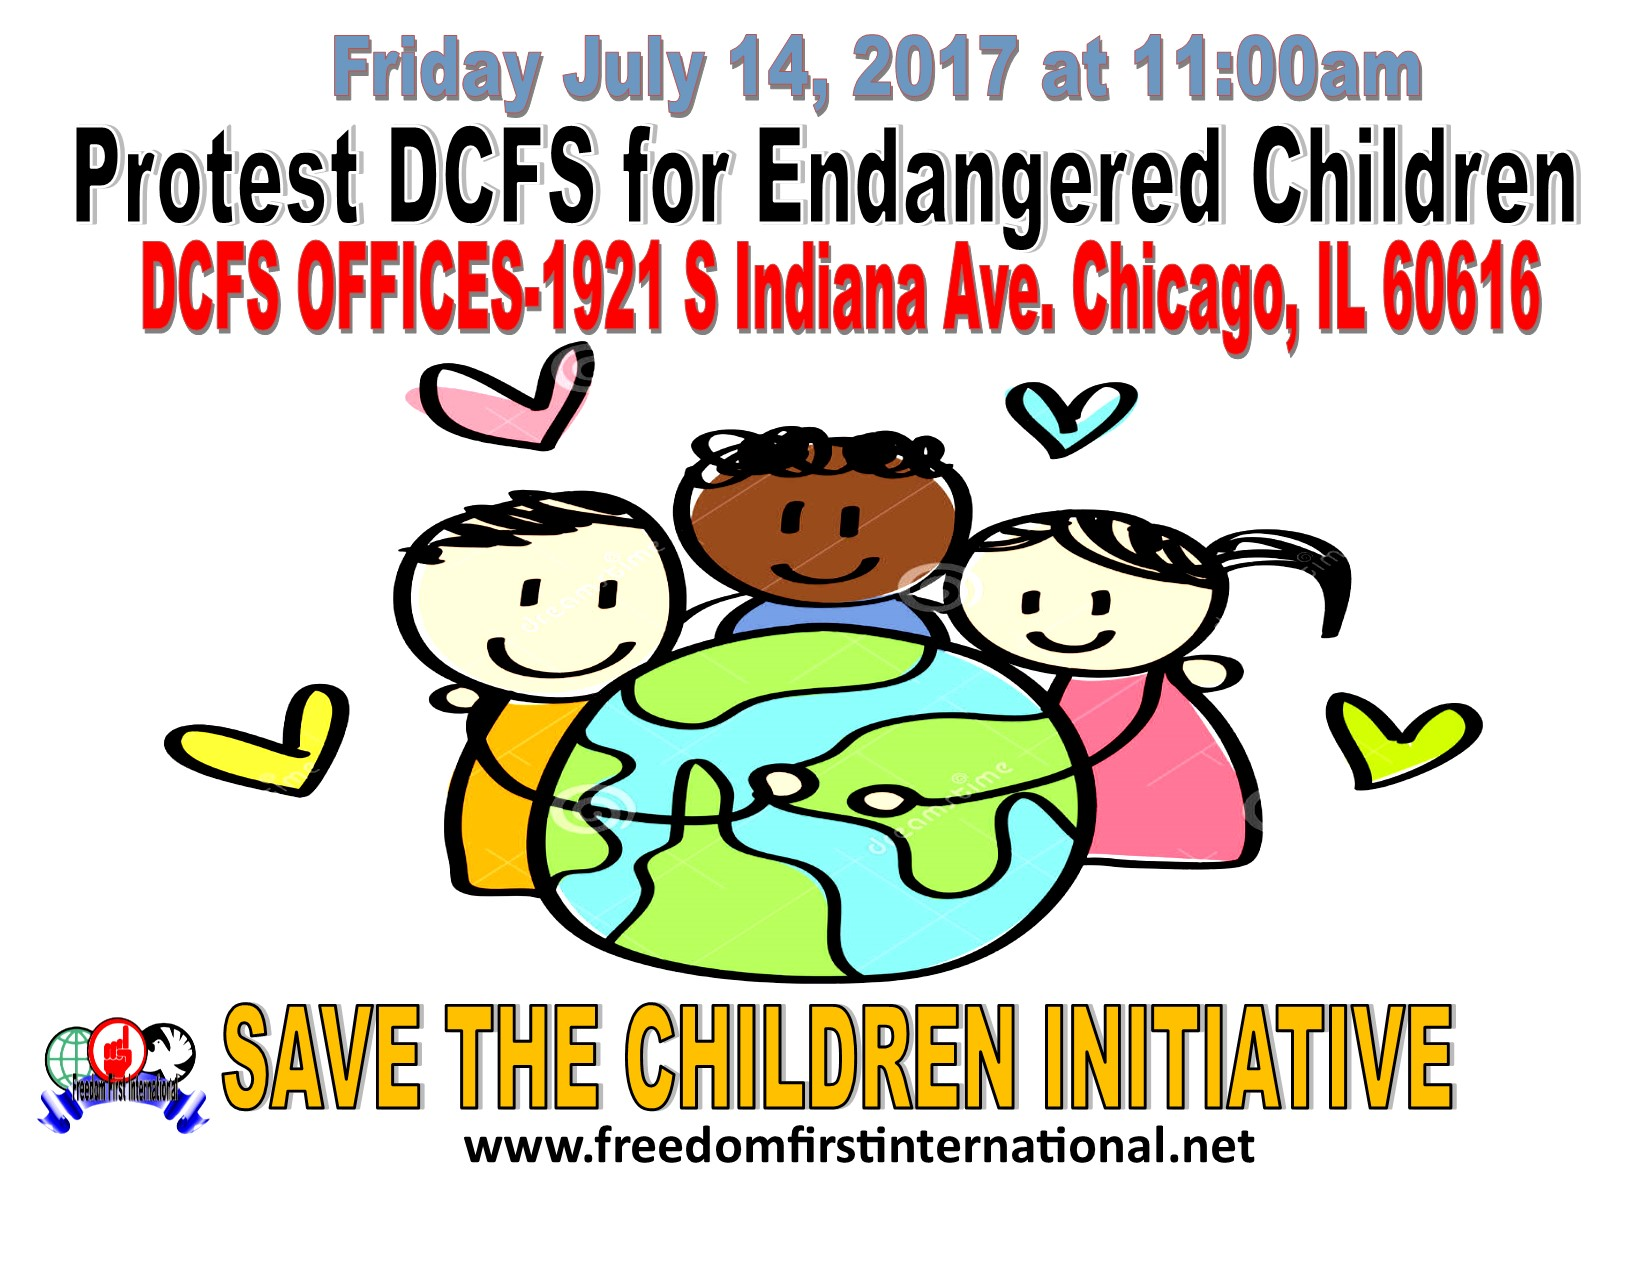 For Immediate Release: Social Justice Organizers-Protest (DCFS) call for immediate attention and investigation by Officials and immediate DCFS overhaul